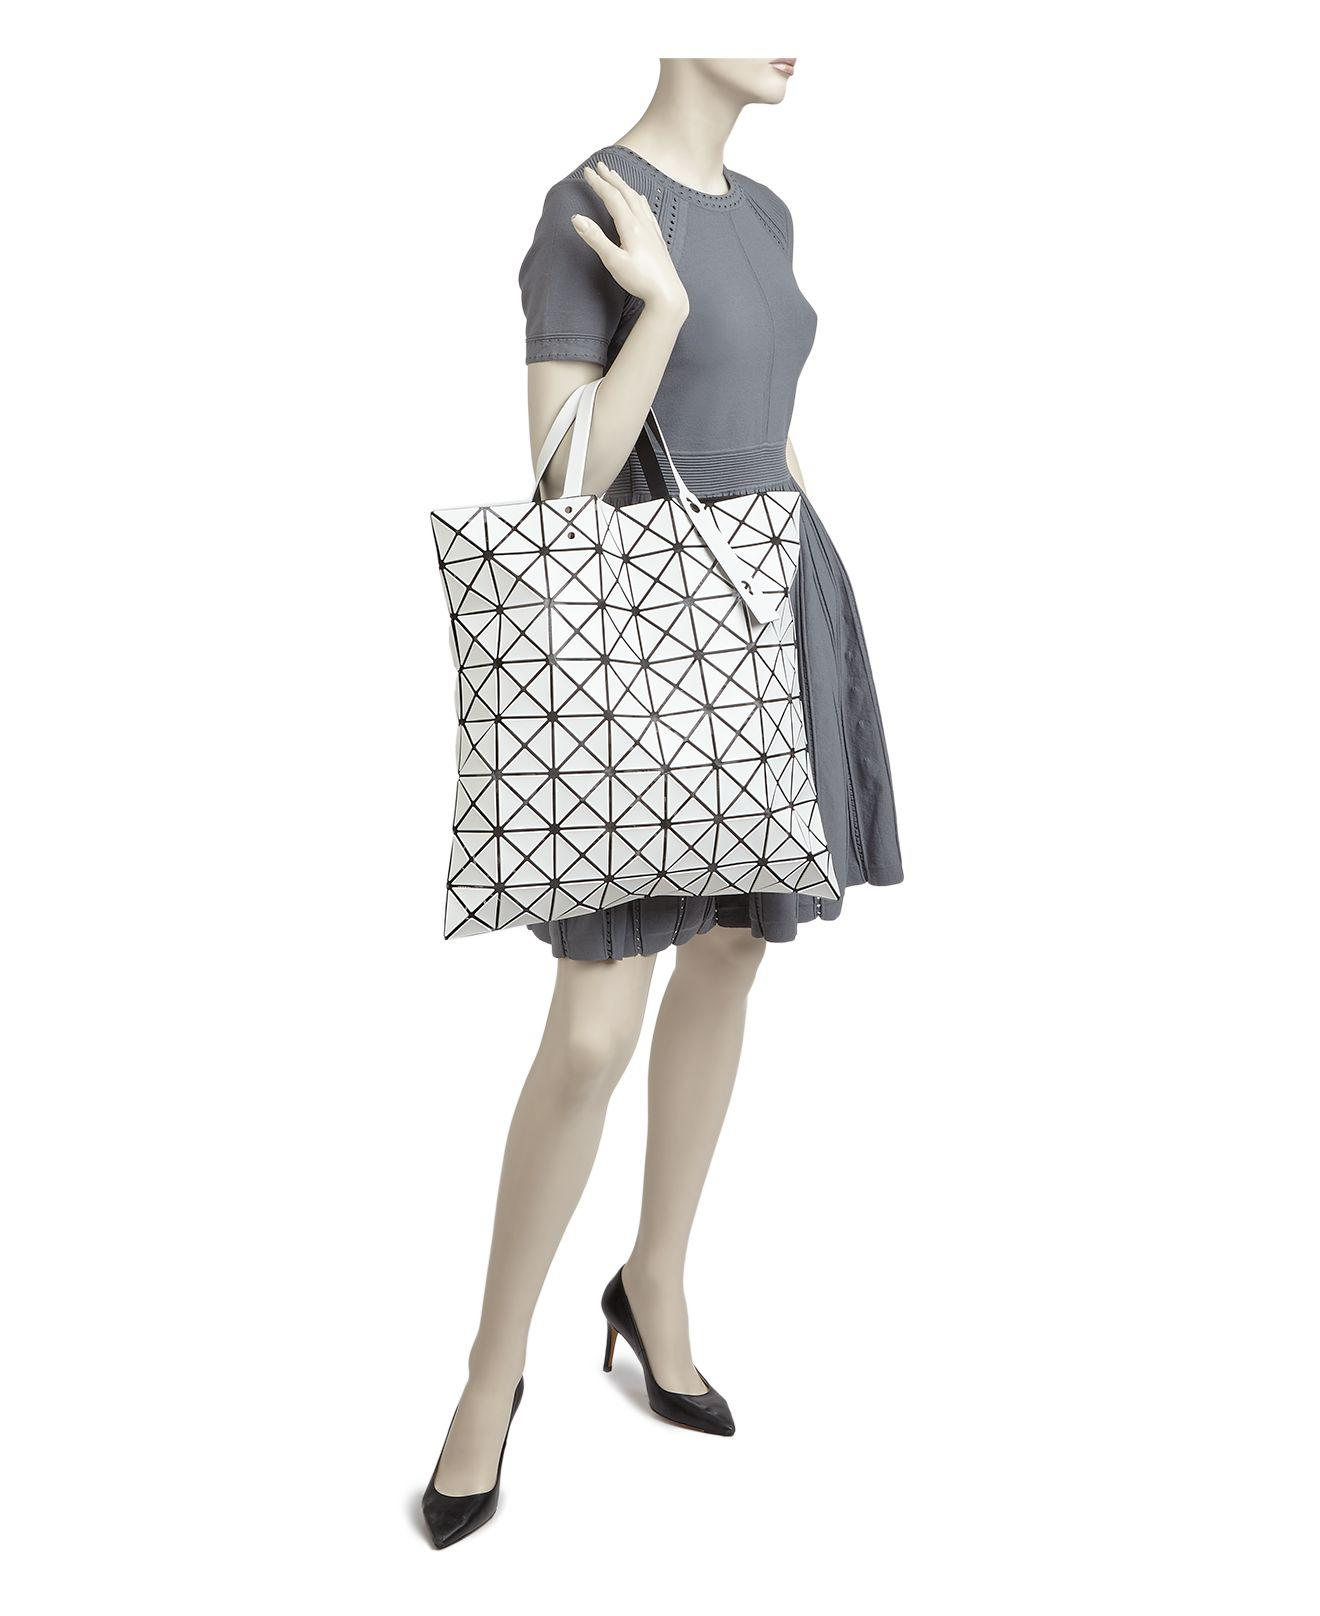 8342e4fc09 Lyst - Issey Miyake Bao Bao Lucent Extra Large Tote in White